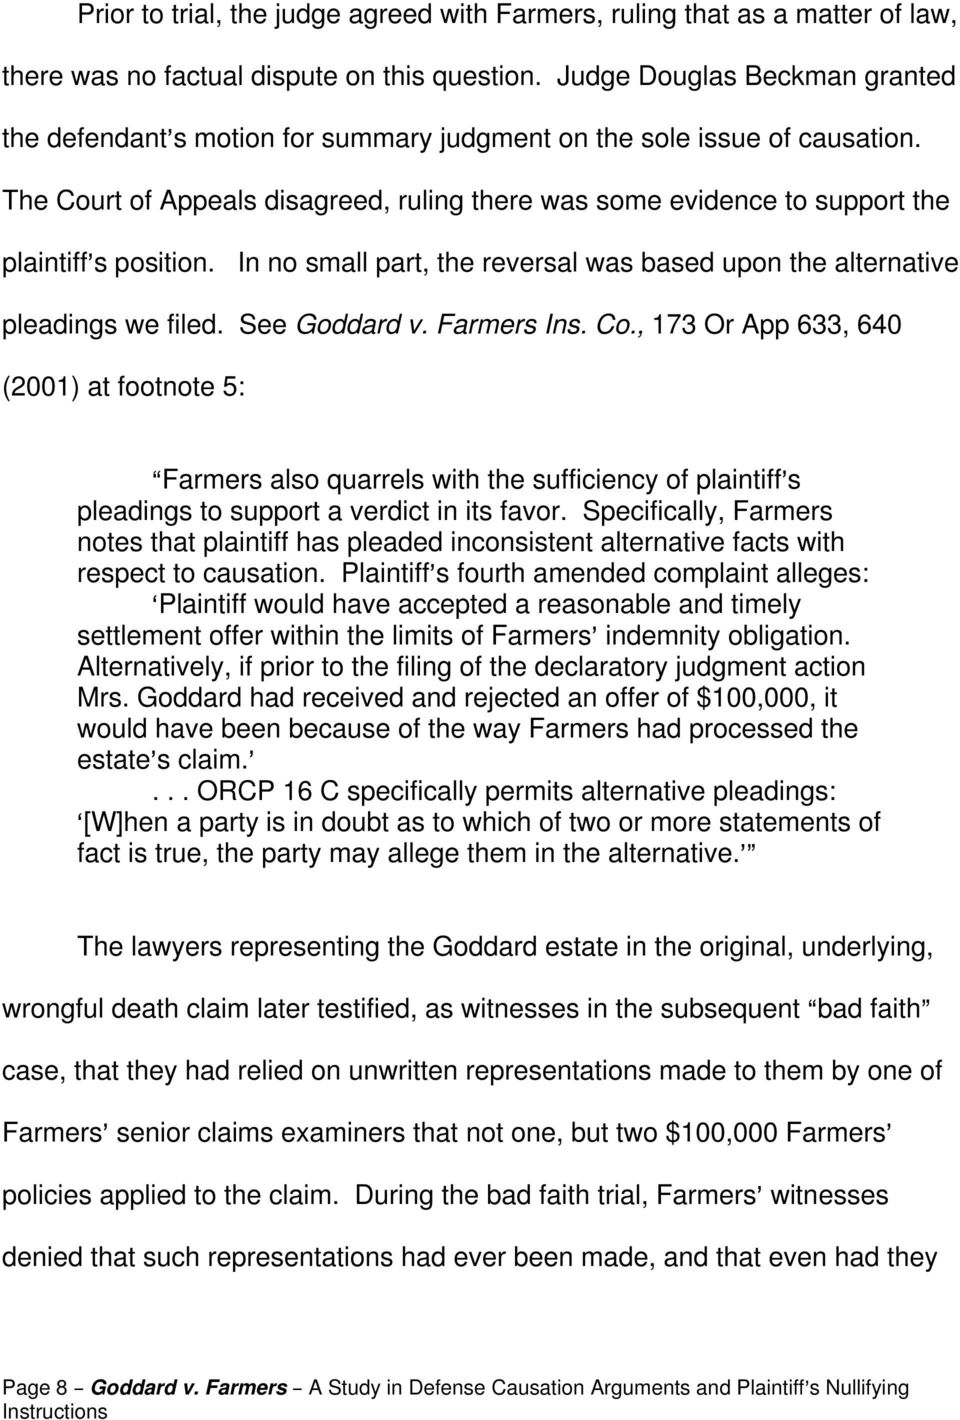 The Court of Appeals disagreed, ruling there was some evidence to support the plaintiff=s position. In no small part, the reversal was based upon the alternative pleadings we filed. See Goddard v.